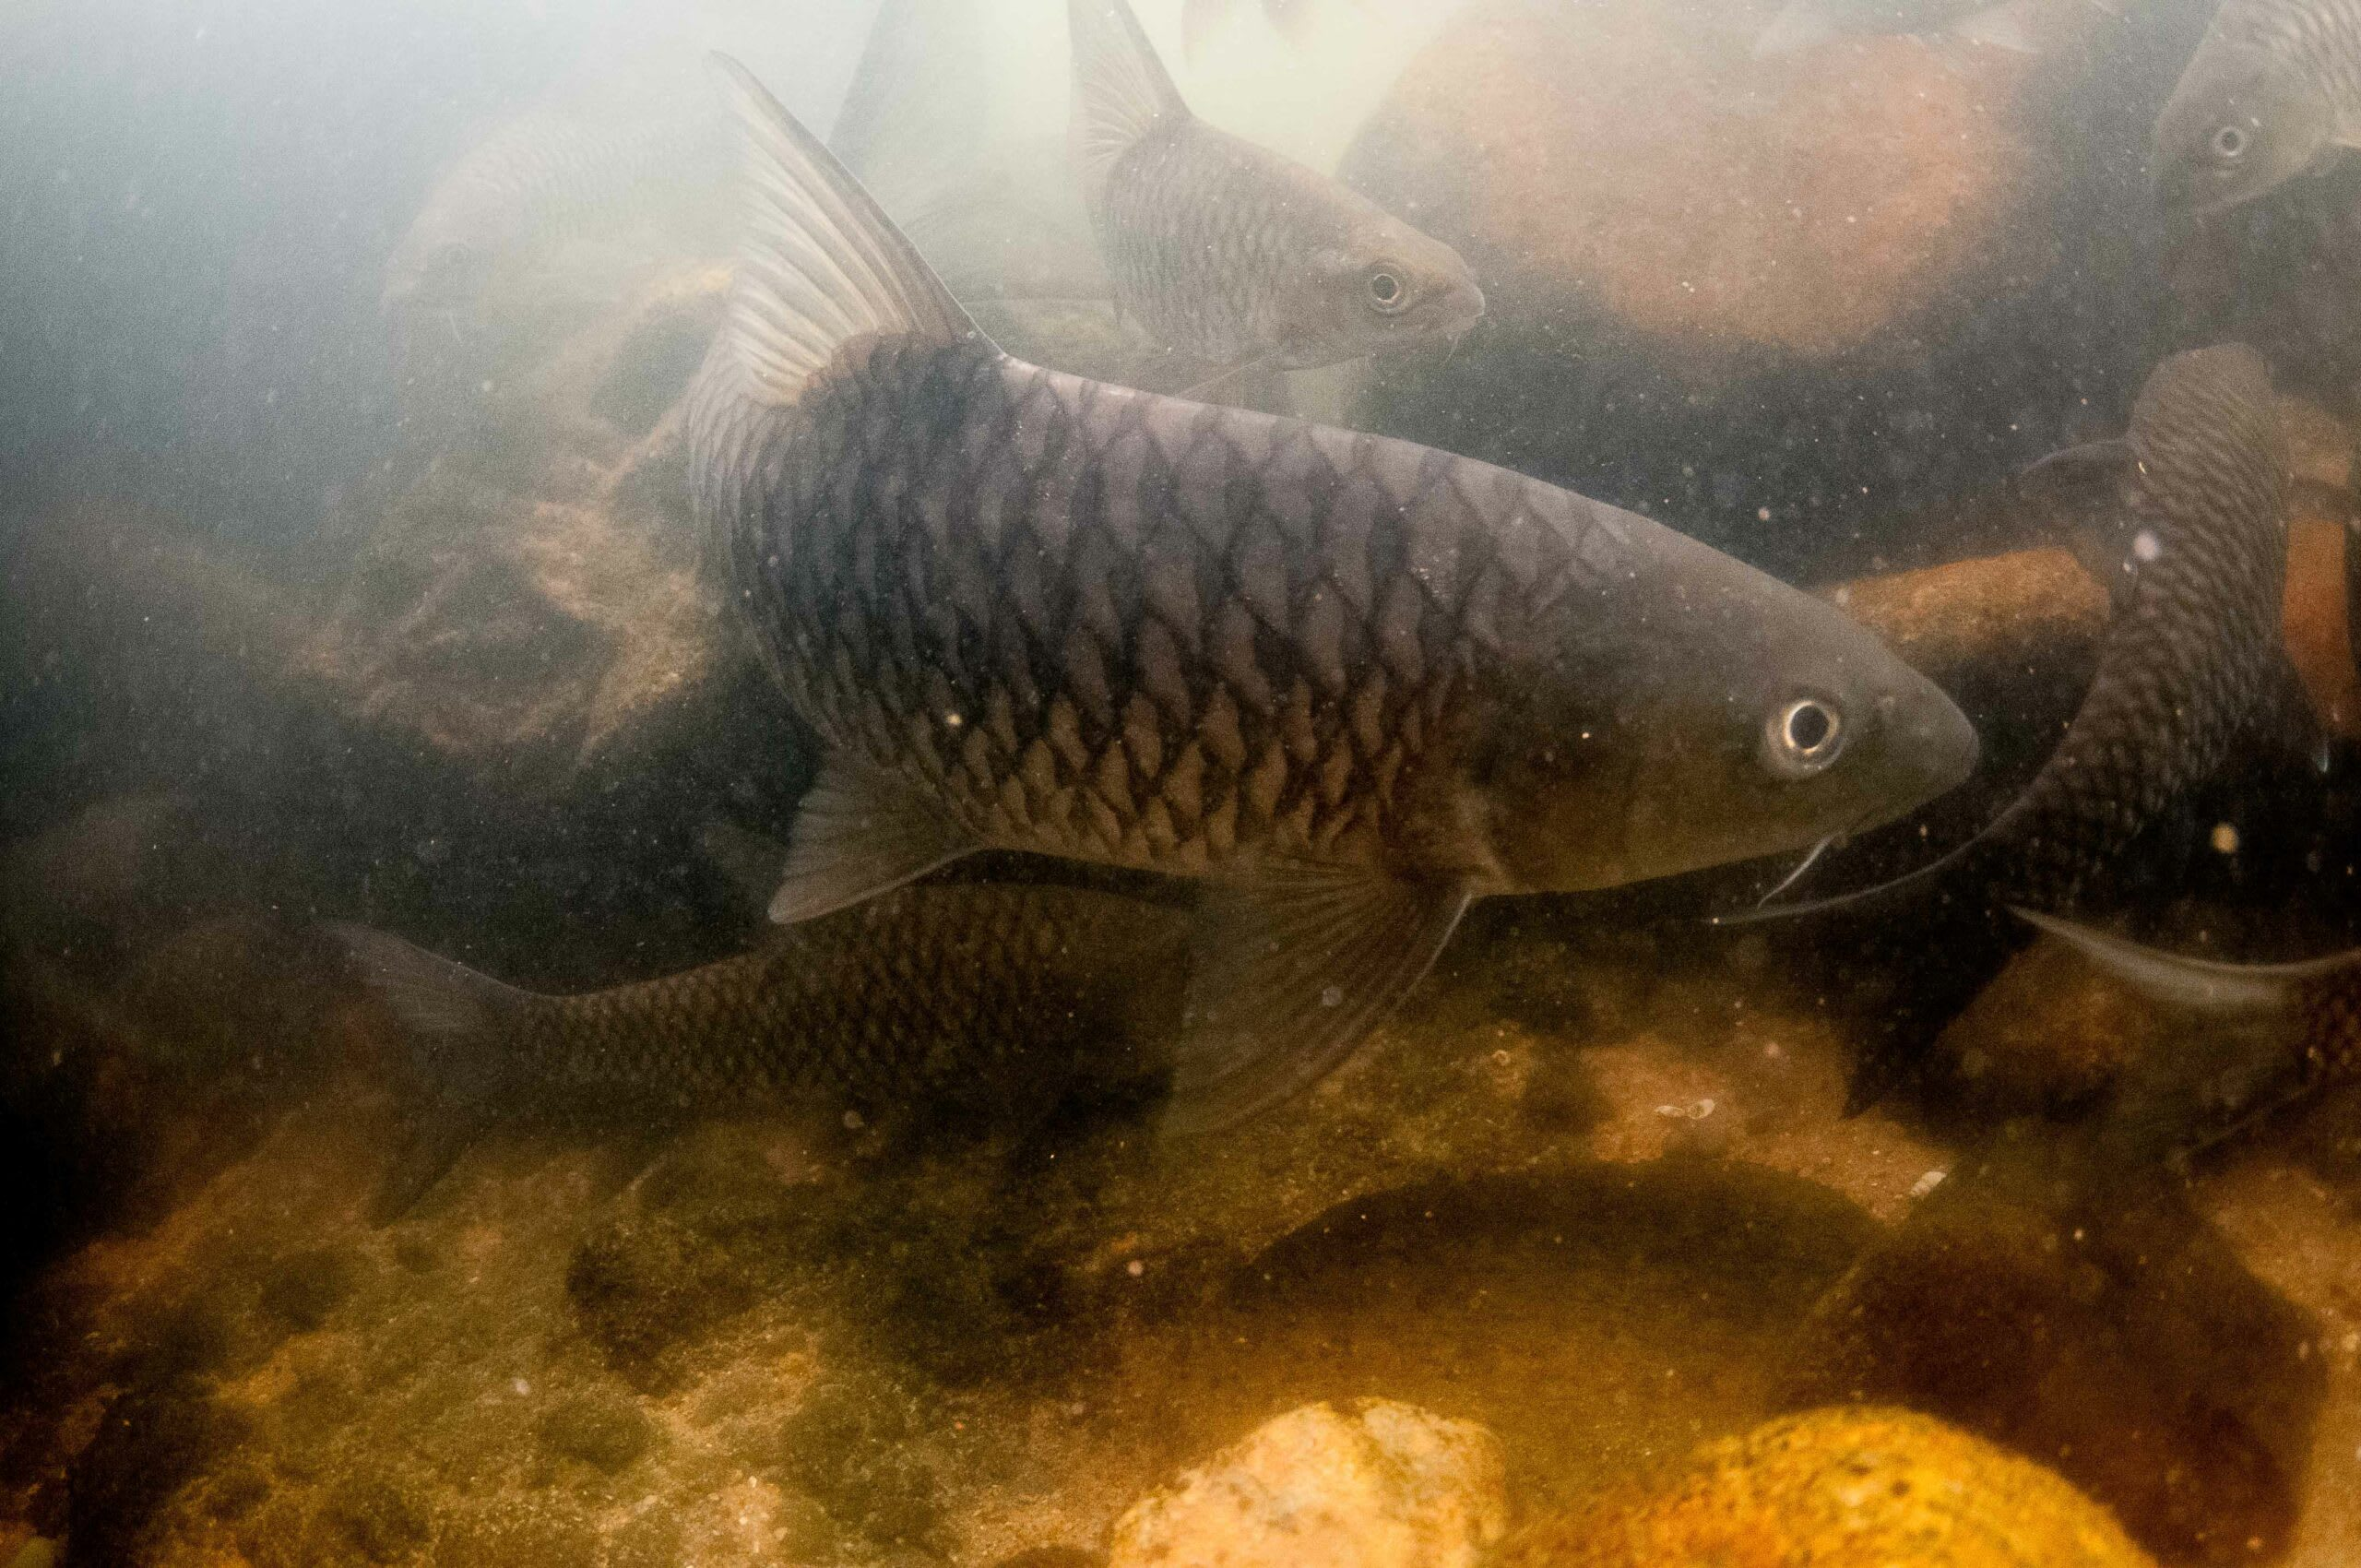 Mahseer are omnivores and feed on plants, small fish, and invertebrates. Their powerful jaws and fleshy lips are adapted for pulling out prey even from the river bed. Photo: Joshua Barton